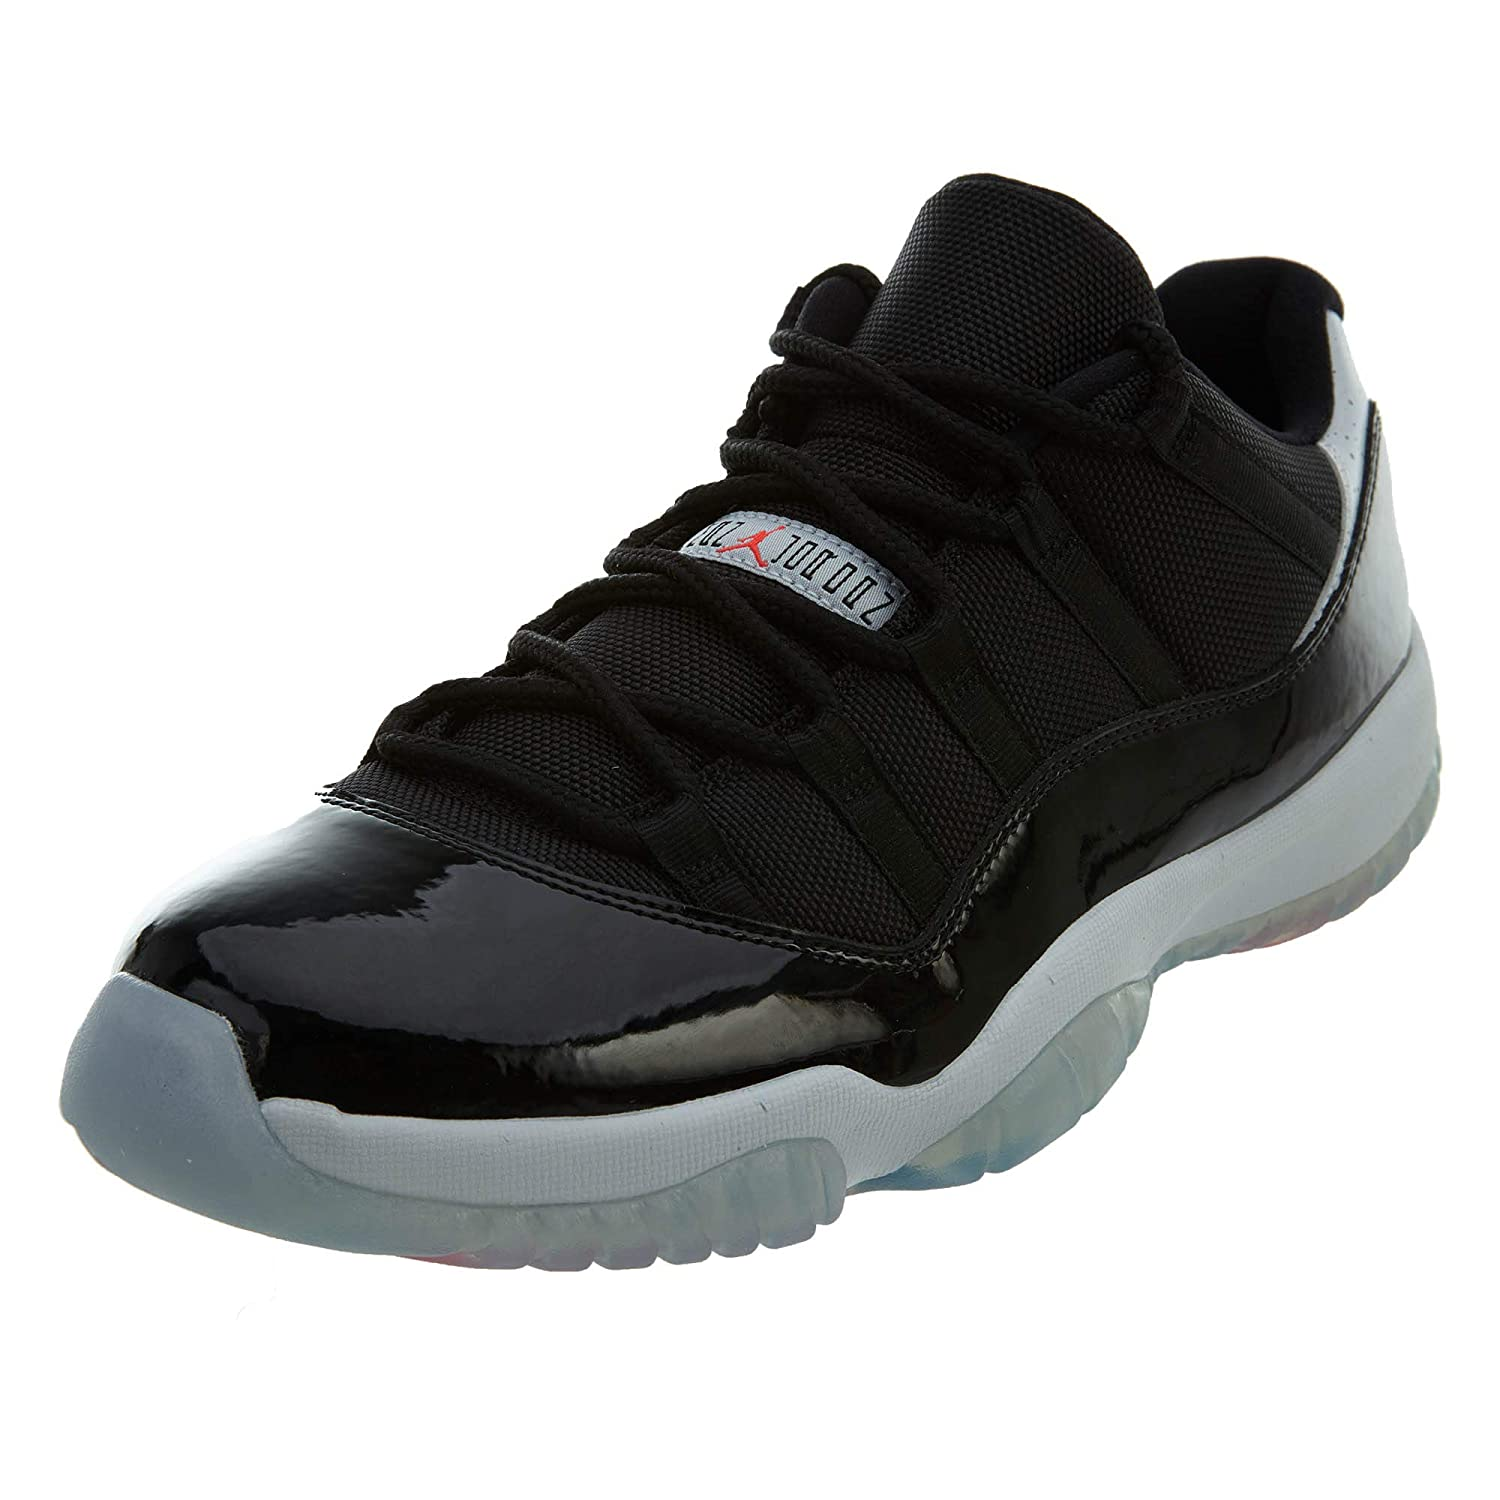 AIR JORDAN - エアジョーダン - AIR JORDAN 11 RETRO LOW 'INFRARED 23' - 528895-023 (メンズ) B00KTKE5C0  8.5